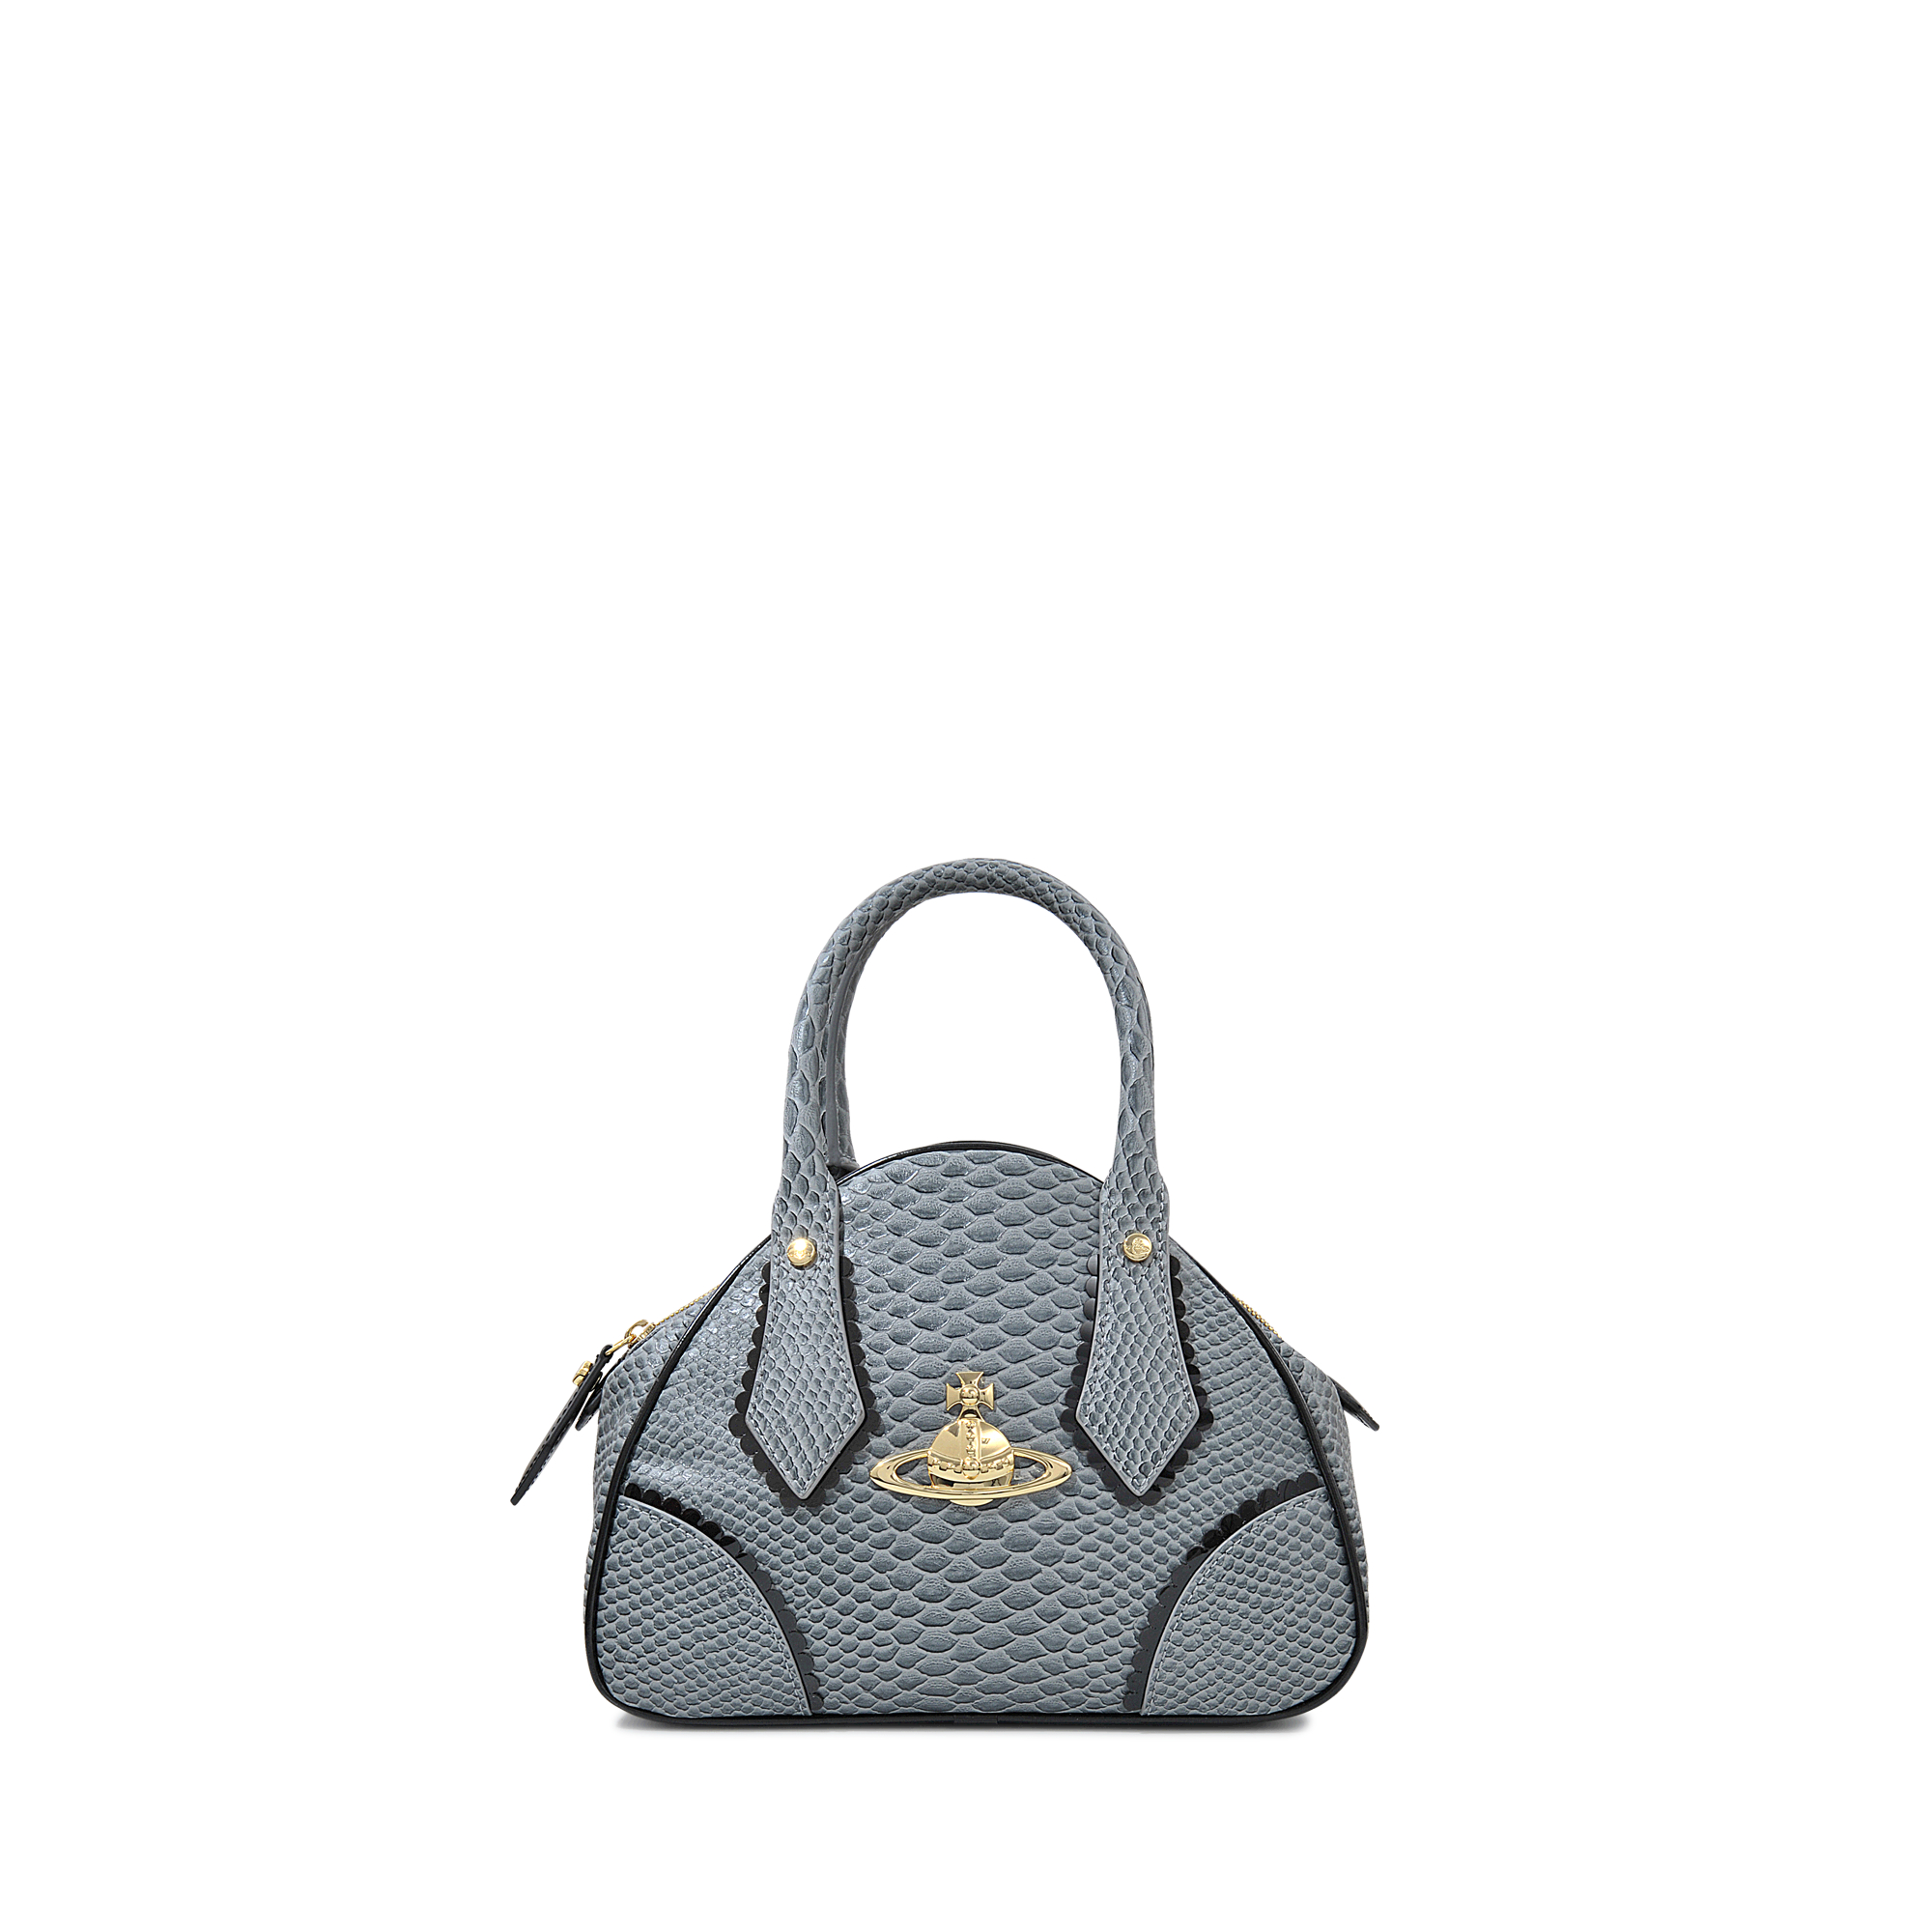 f951315a180 Vivienne Westwood Yasmin Mini Frilly Snake Bag in Gray - Lyst